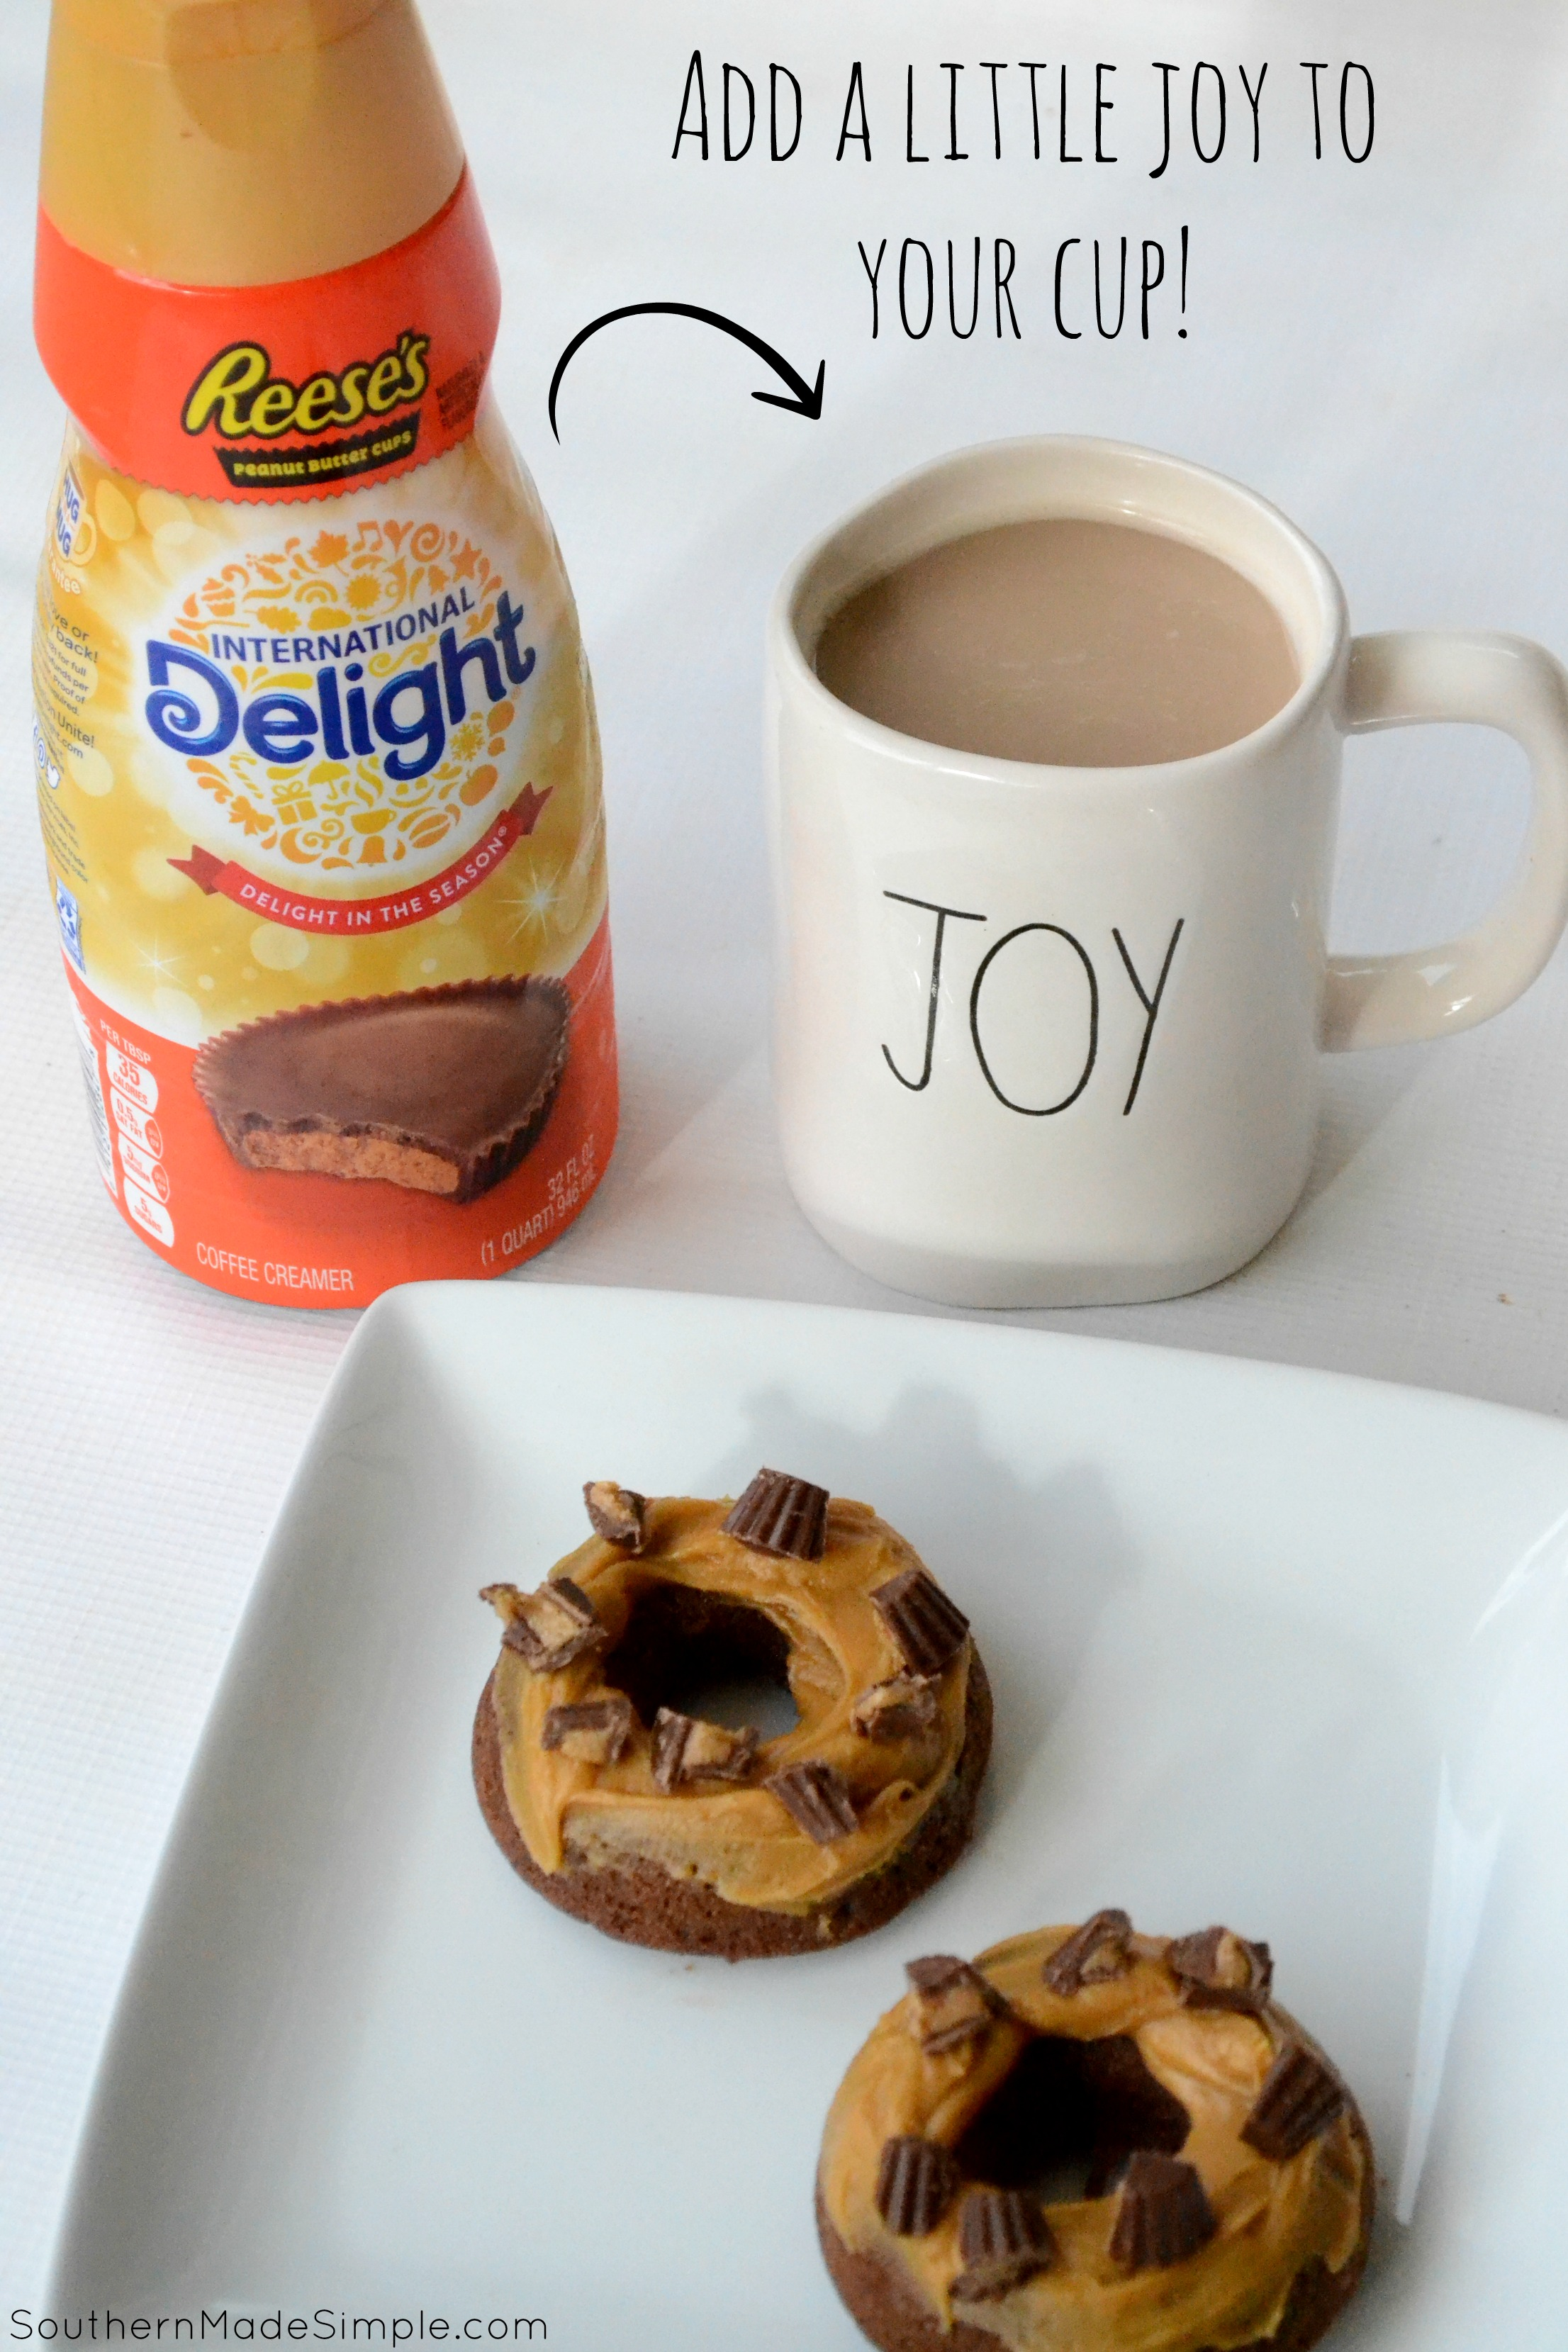 These Glazed Chocolate Peanut Butter Cup Doughnuts are a decadent treat that are easy to make, and they're perfect paired with your morning cup of coffee! #ad #DelightfulMoments #SplashOfDelight